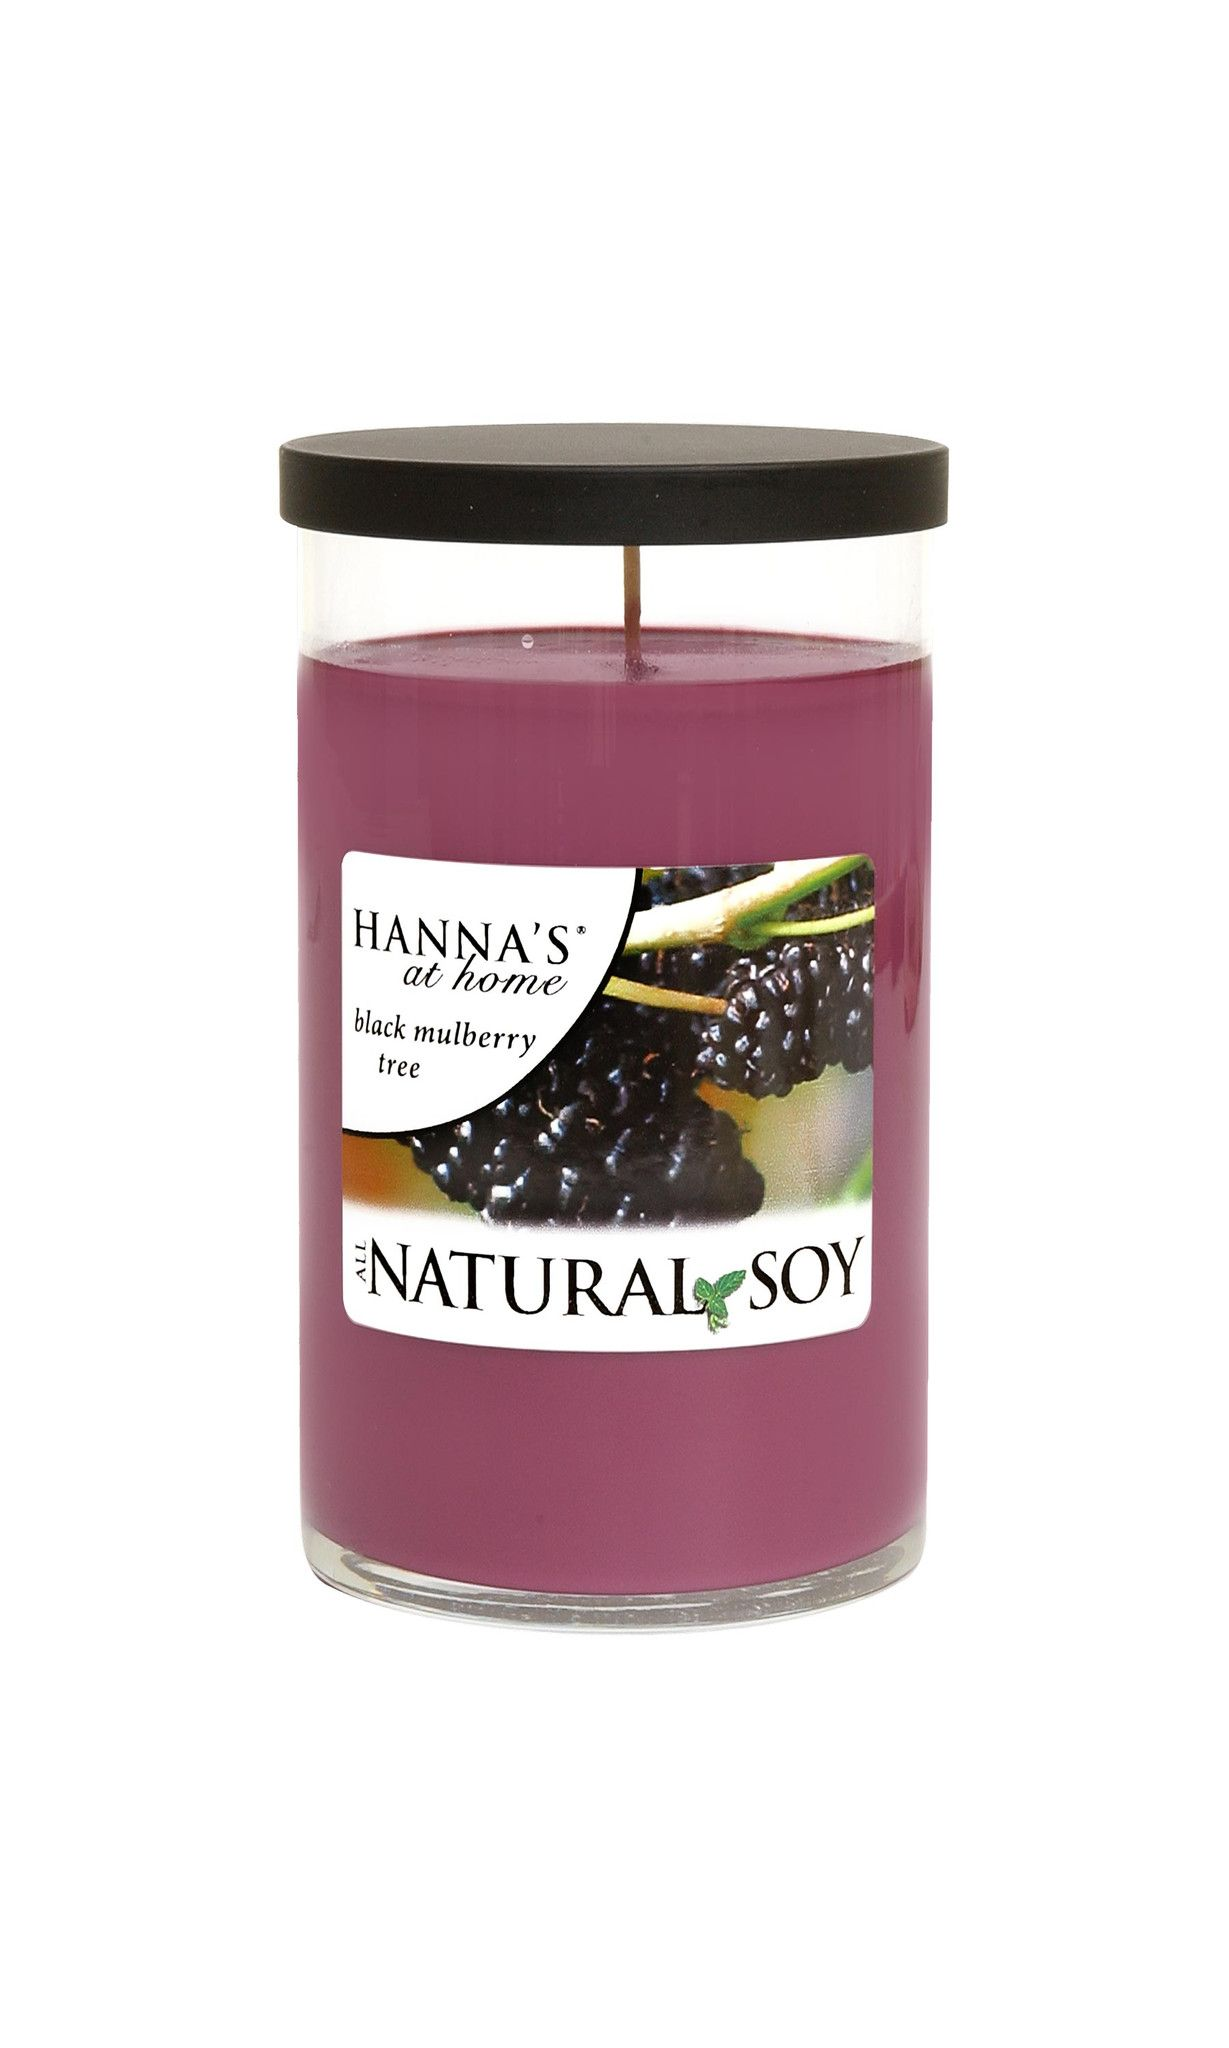 Natural Soy Black Mulberry Tree Scented Soy Candle